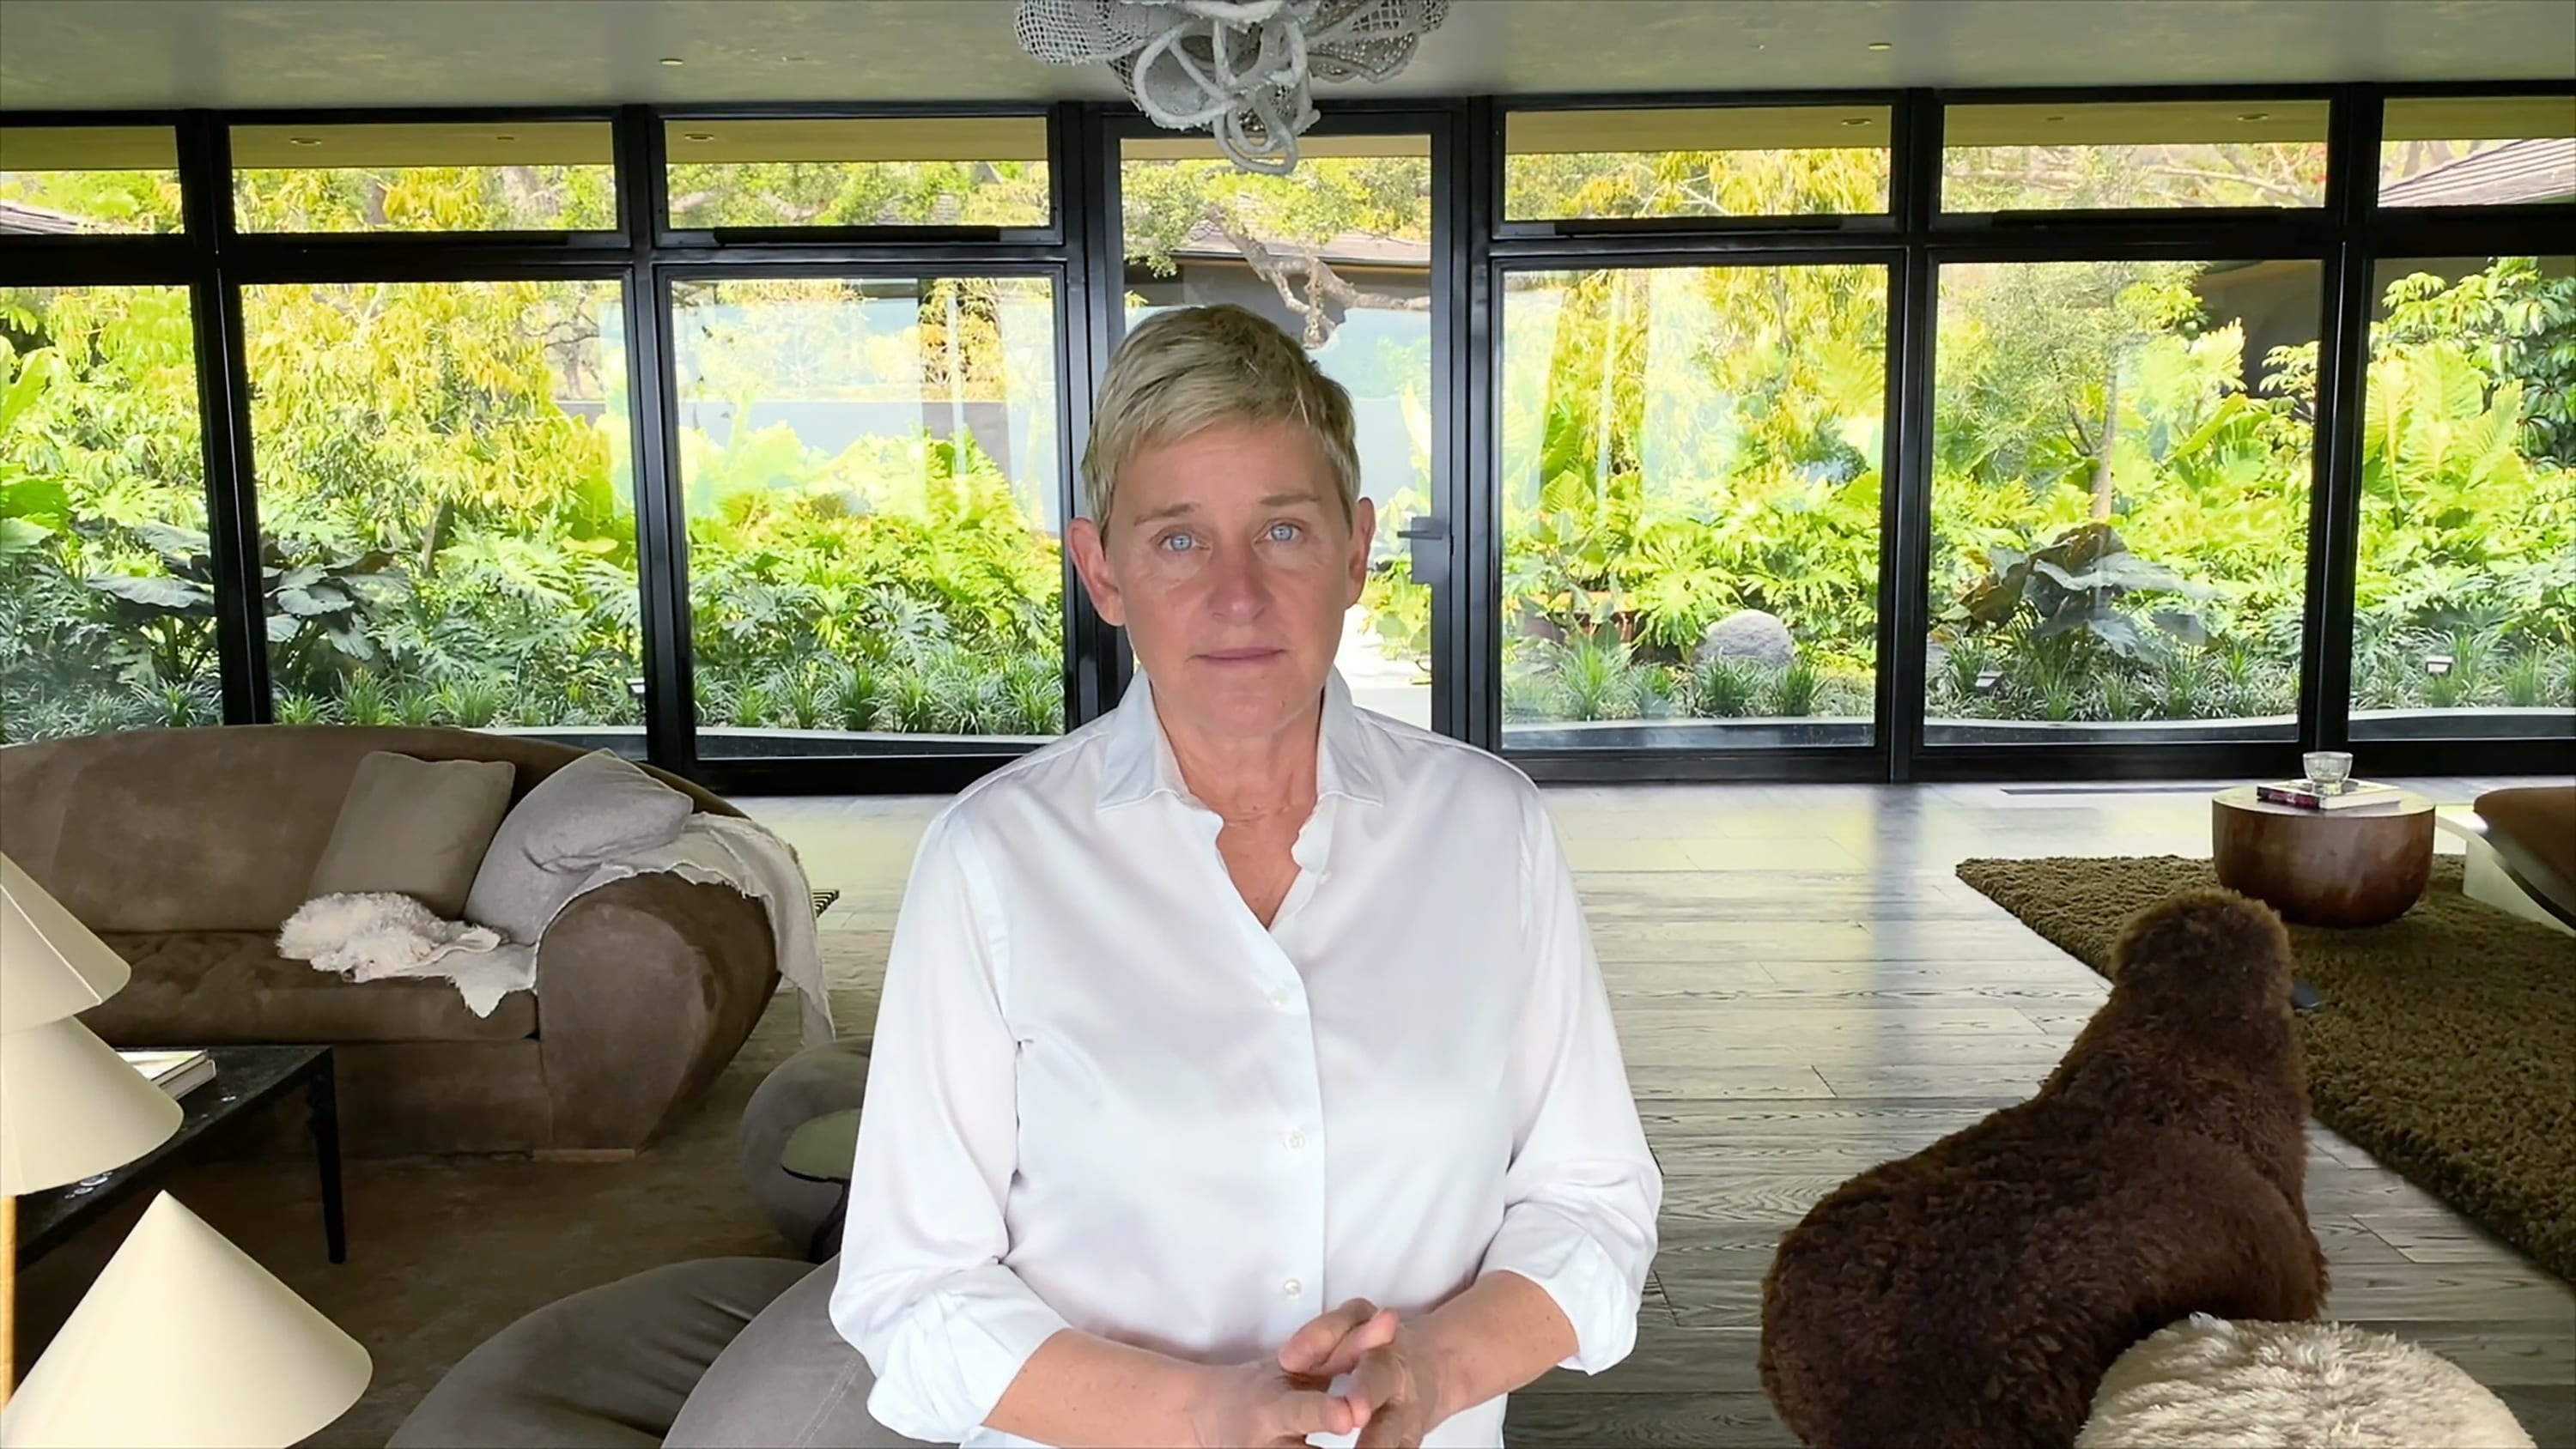 Known House Flipper Ellen DeGeneres Is Now Making Big Money Buying and Selling Art